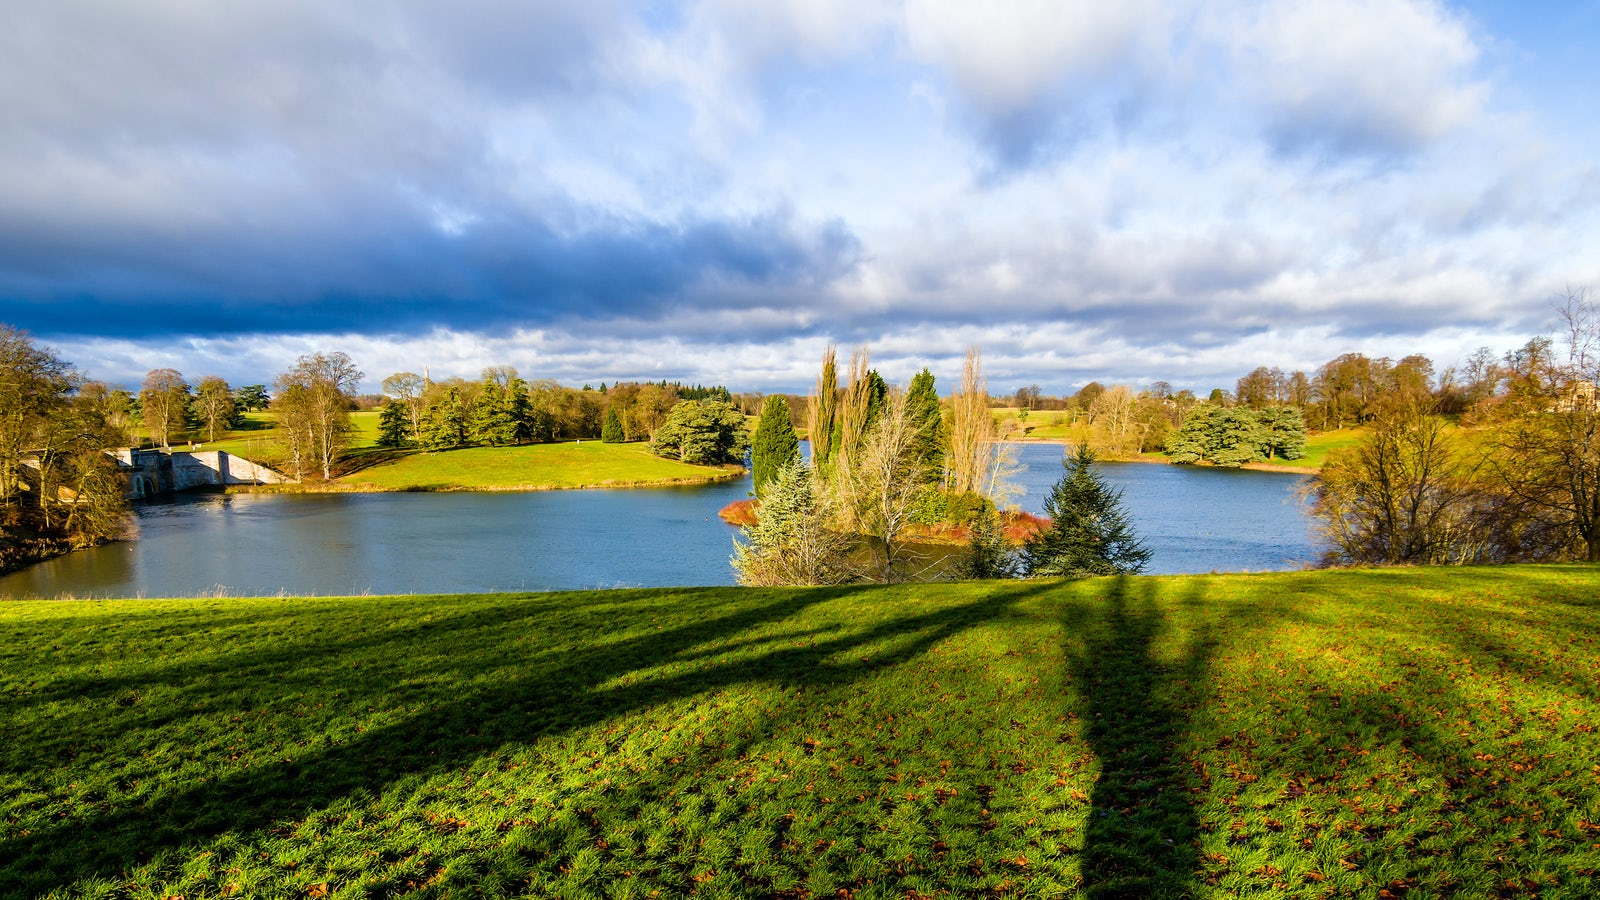 Cover picture: The lake at the Blenheim Palace | Picture credits to © iStock/yanjf